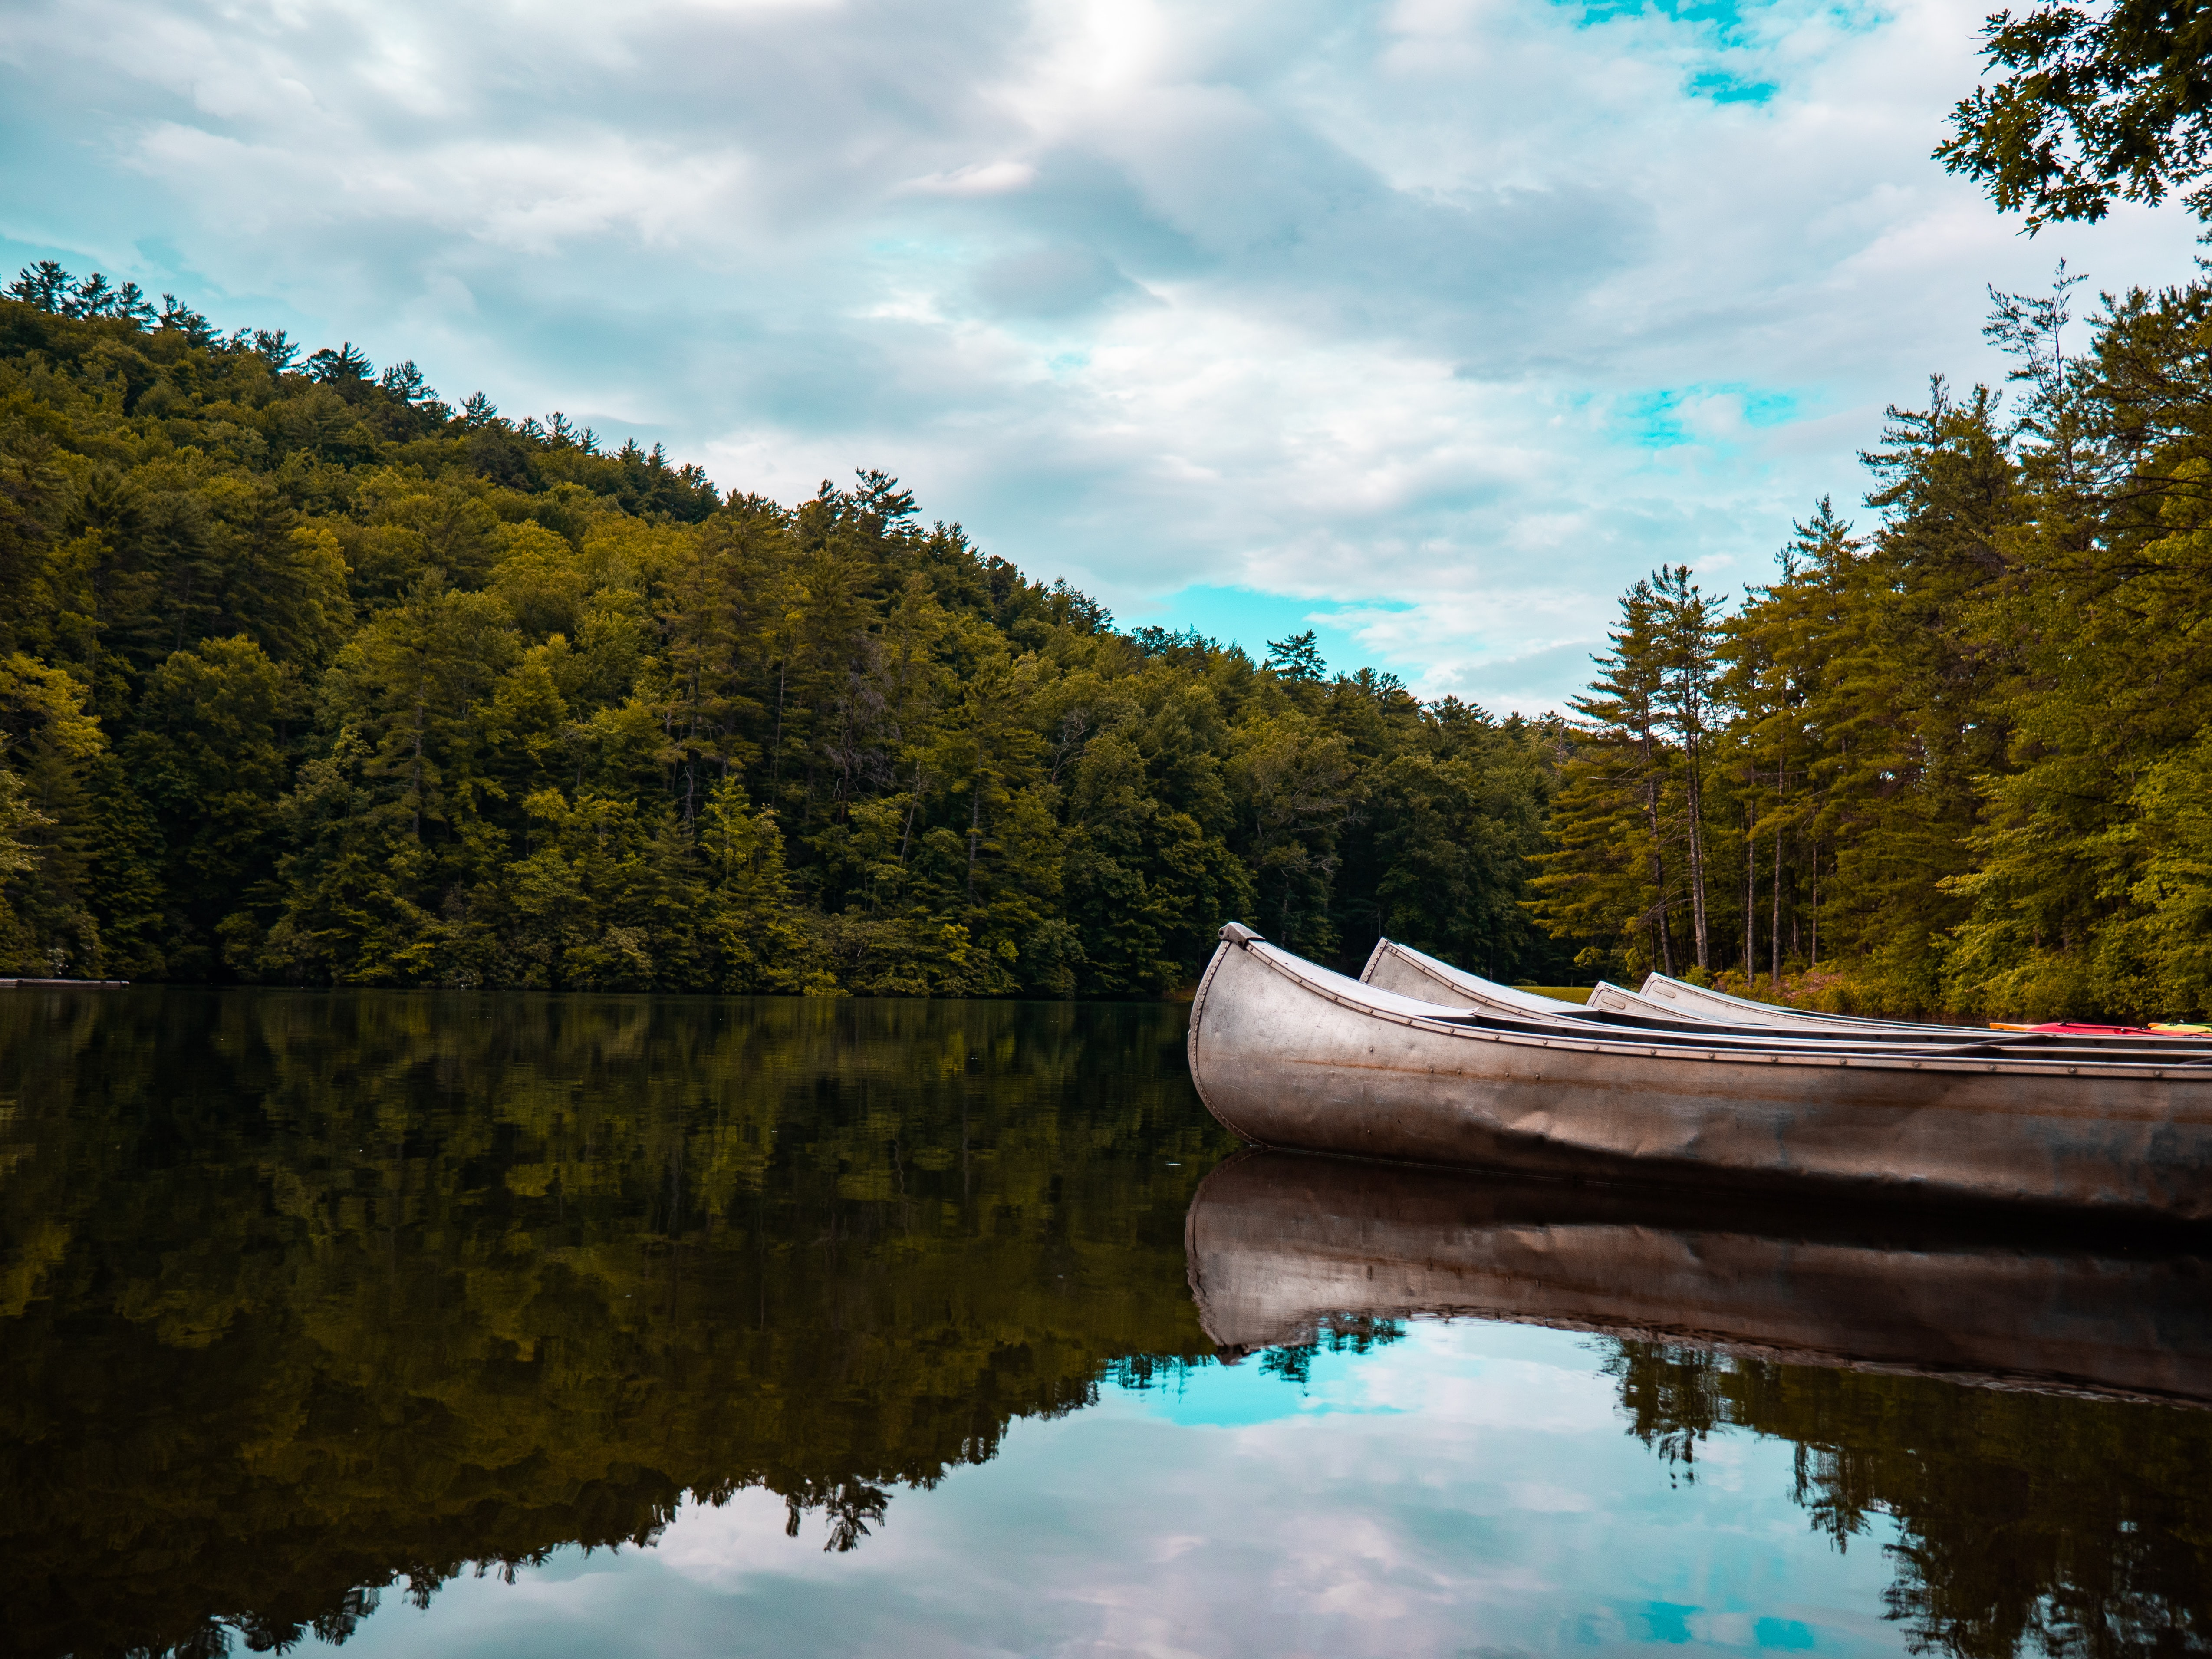 white canoe on river surrounded by trees